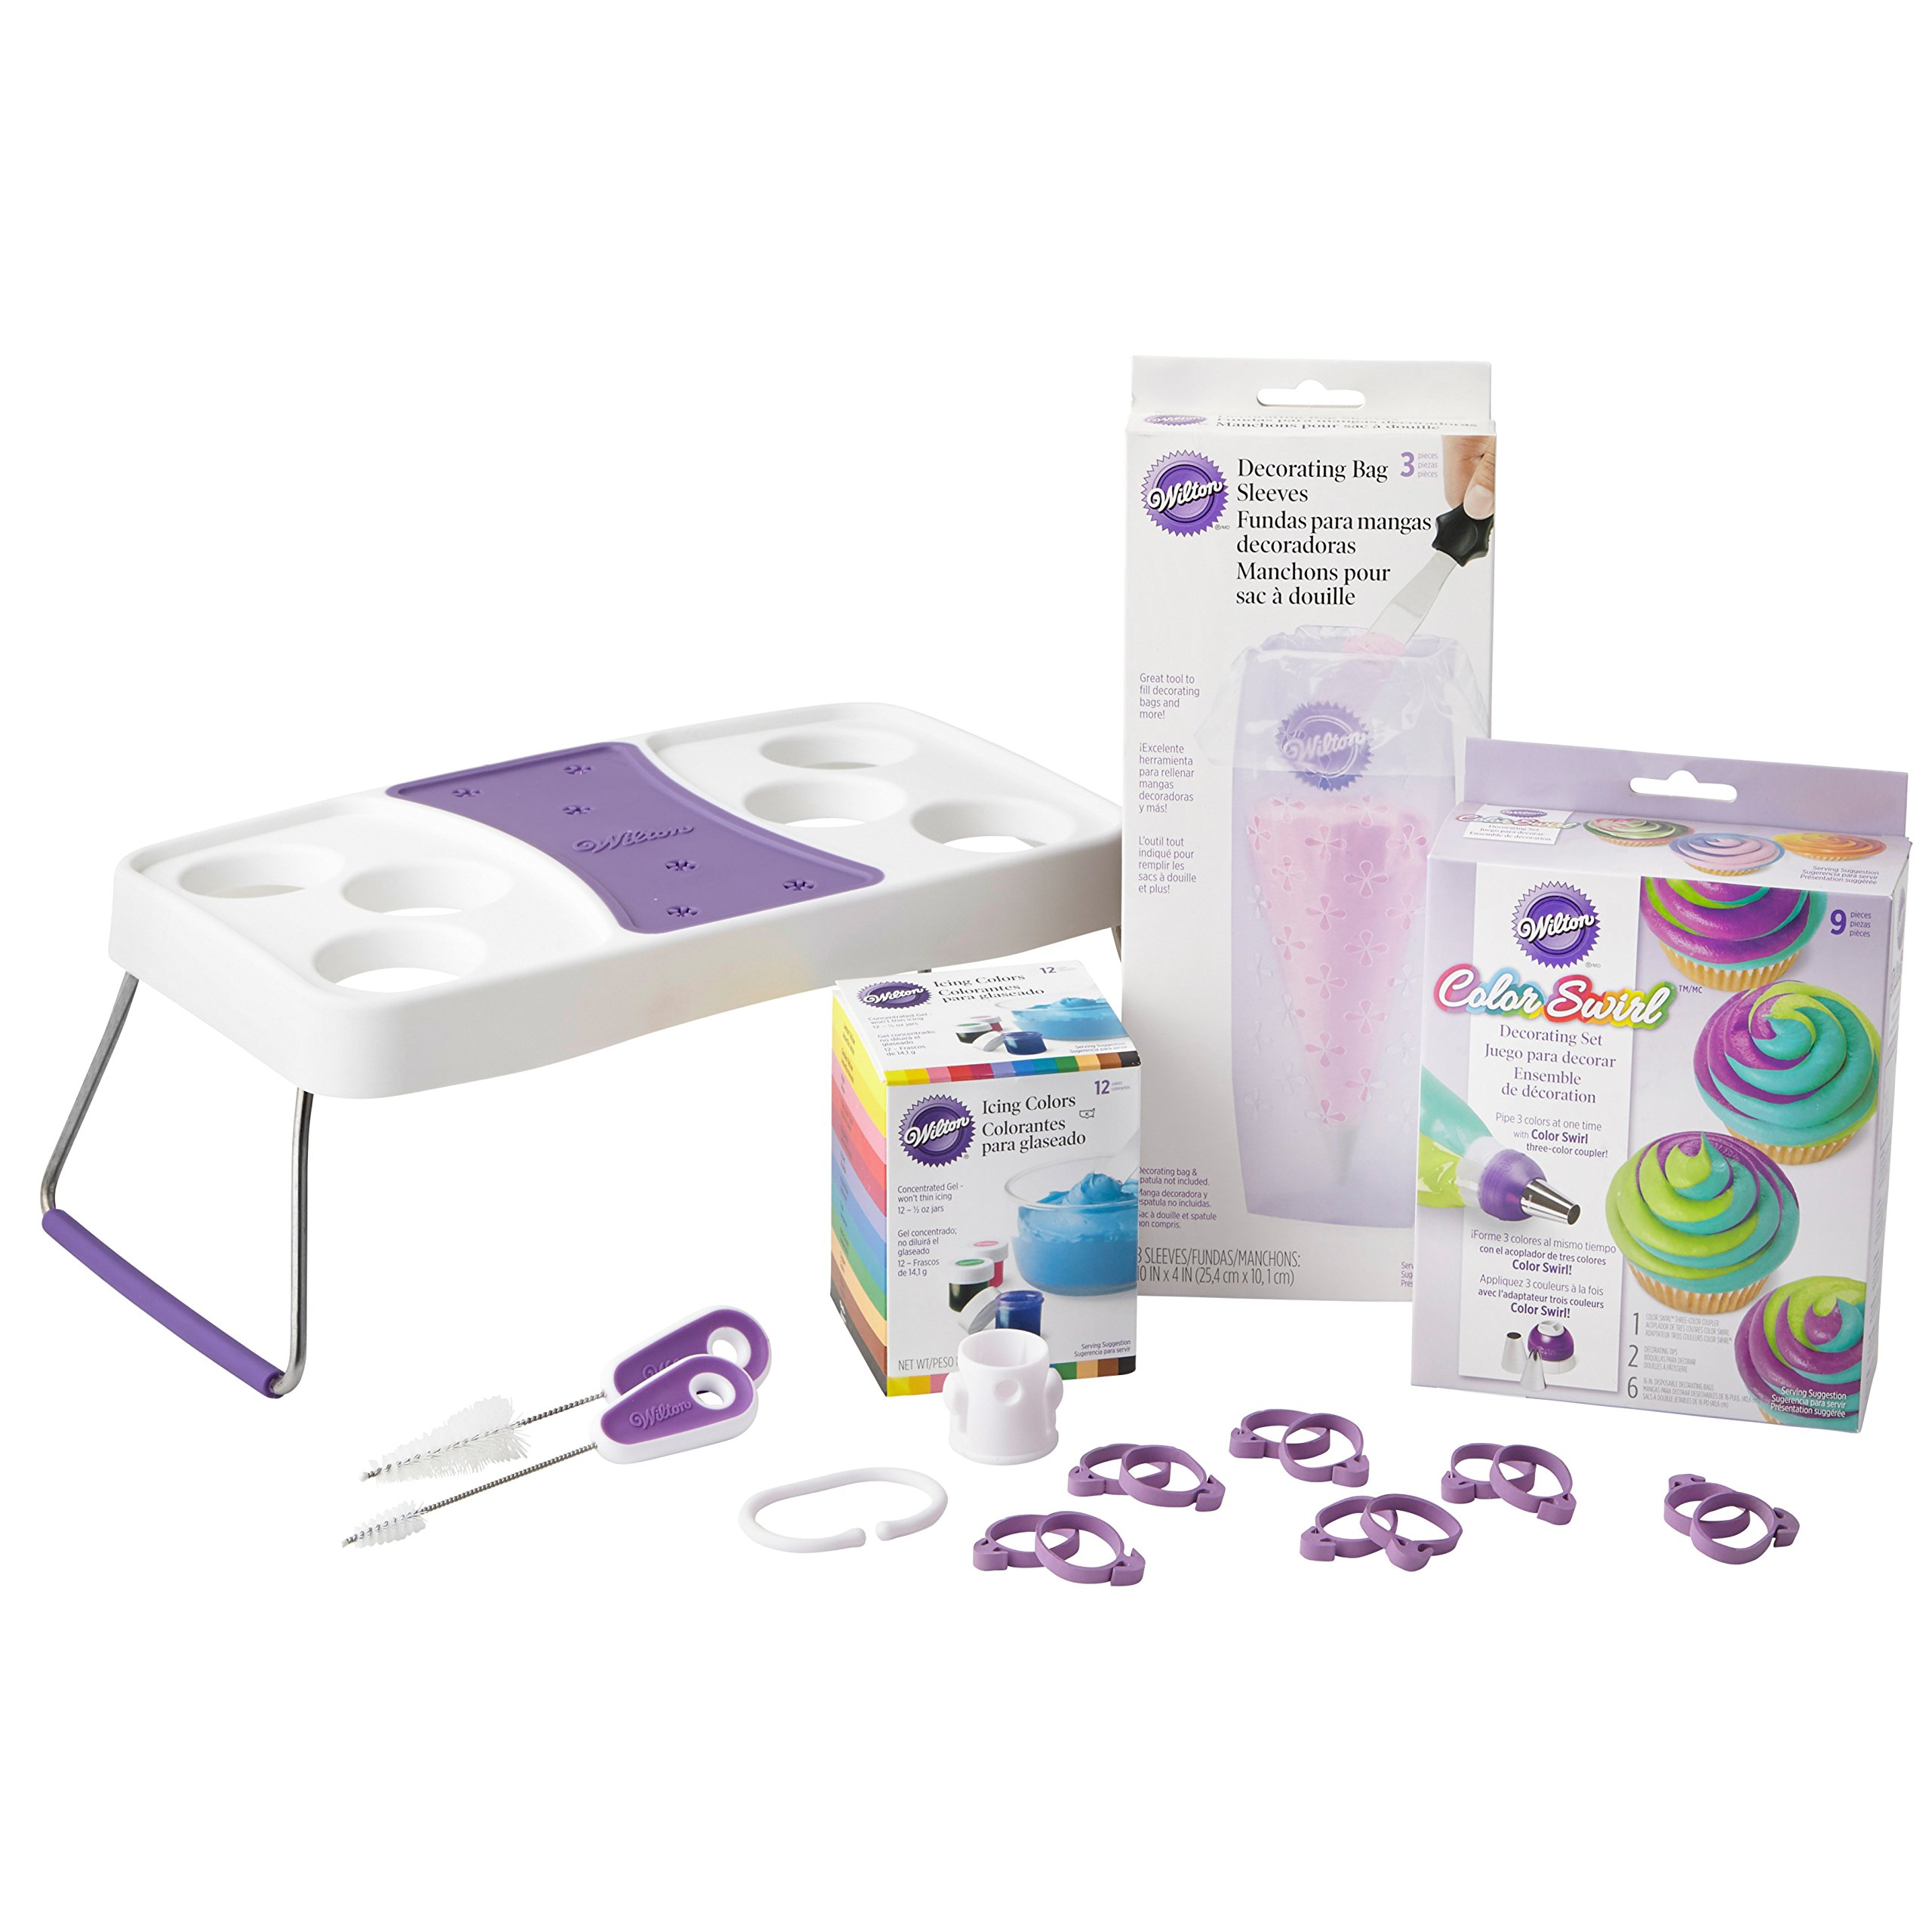 Wilton Color Swirl Cupcake Decorating Supplies Kit, 19-Piece - Color Swirl Three-Color Coupler, Gel-Based Food Colors, Decorating Bag Holder, Icing Bag Ties, Bag Cutter and Brush Set